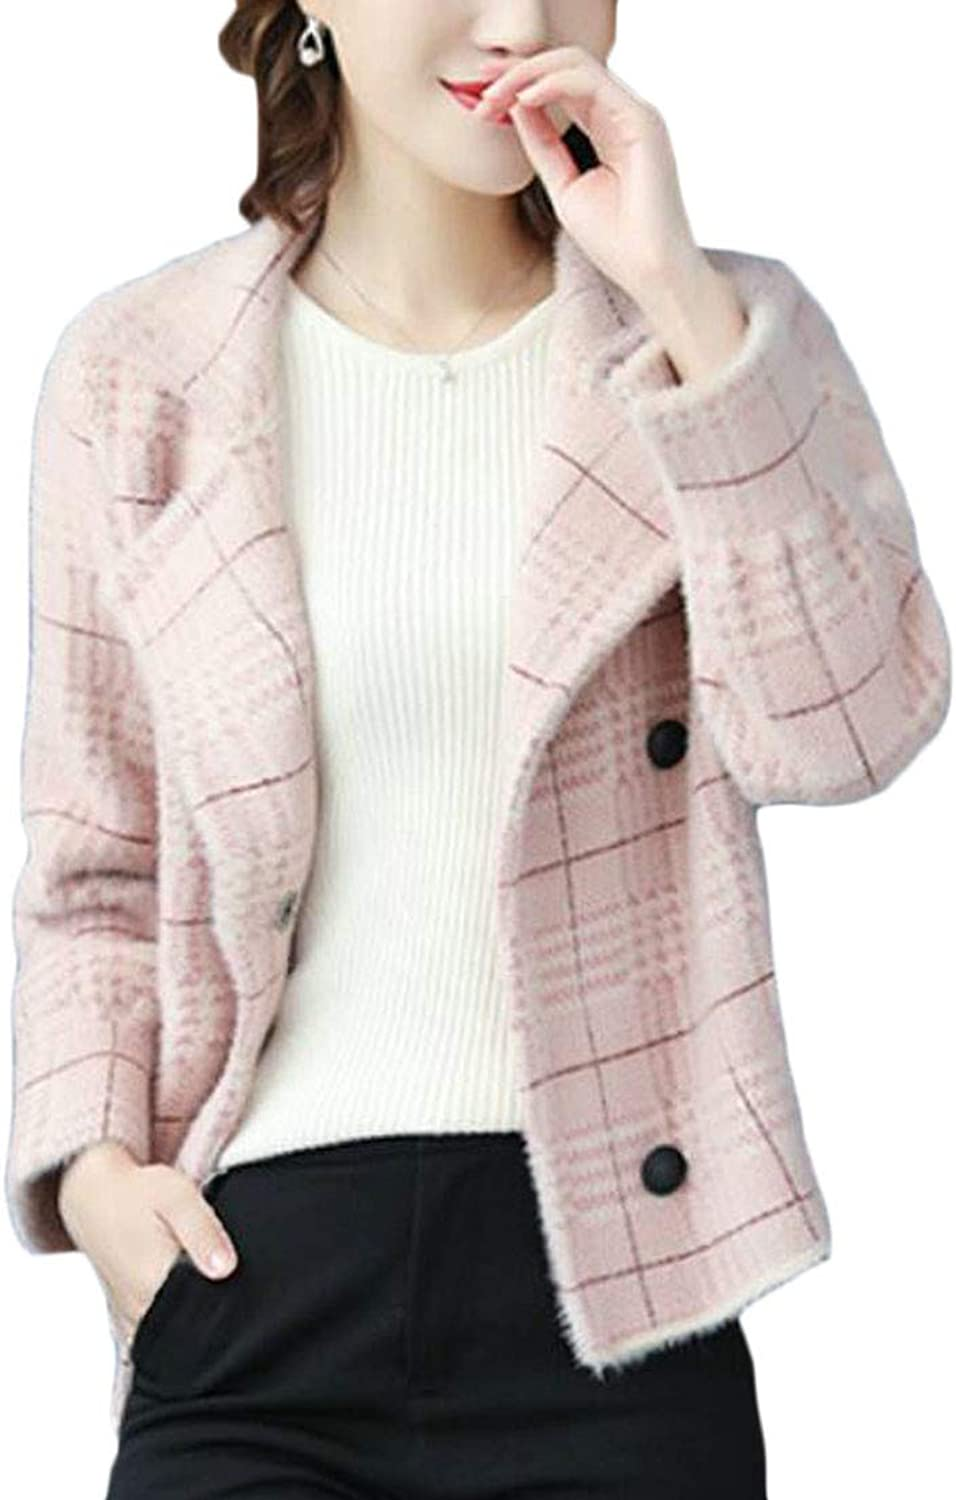 Cromoncent Women's Casual Lapel Plaid Knitted Blazer Double Breasted Cardigans Coat